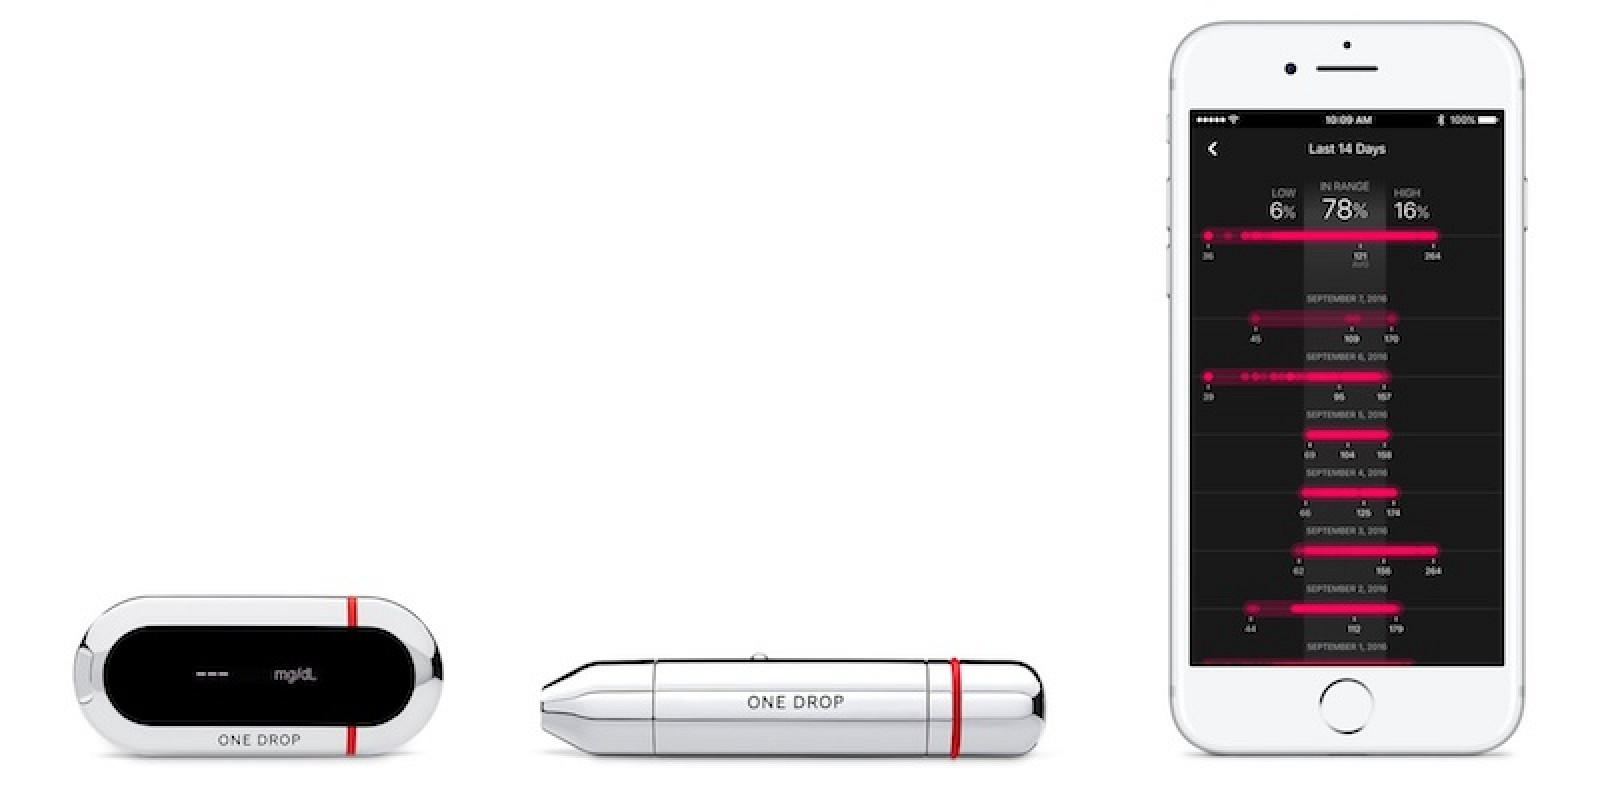 One Drop Blood Glucose Monitoring Kit For Iphone Launches